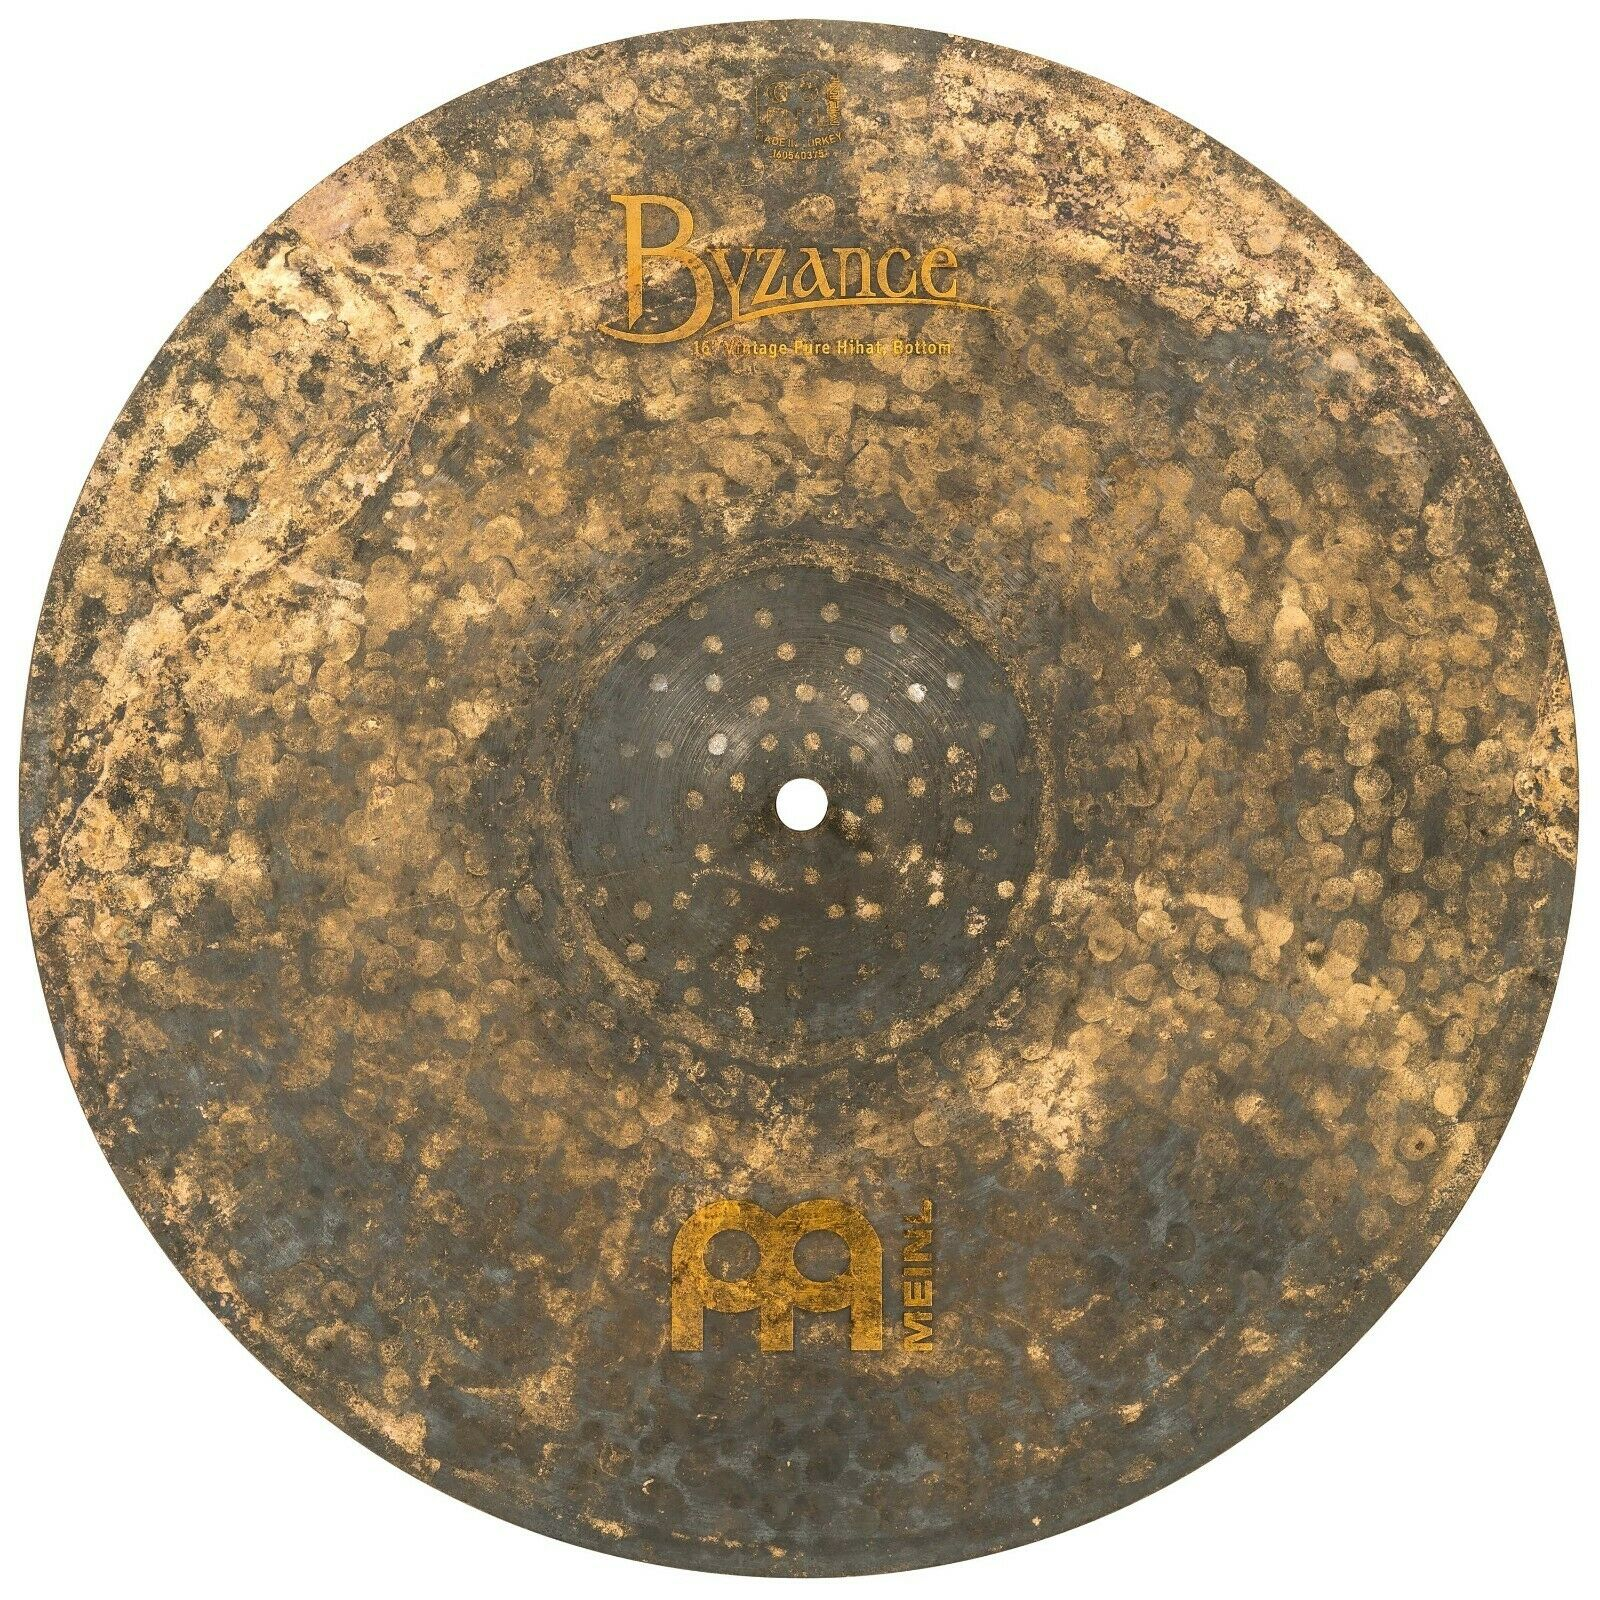 MEINL Cymbals B16VPH Byzance Vintage Pure HiHats 16